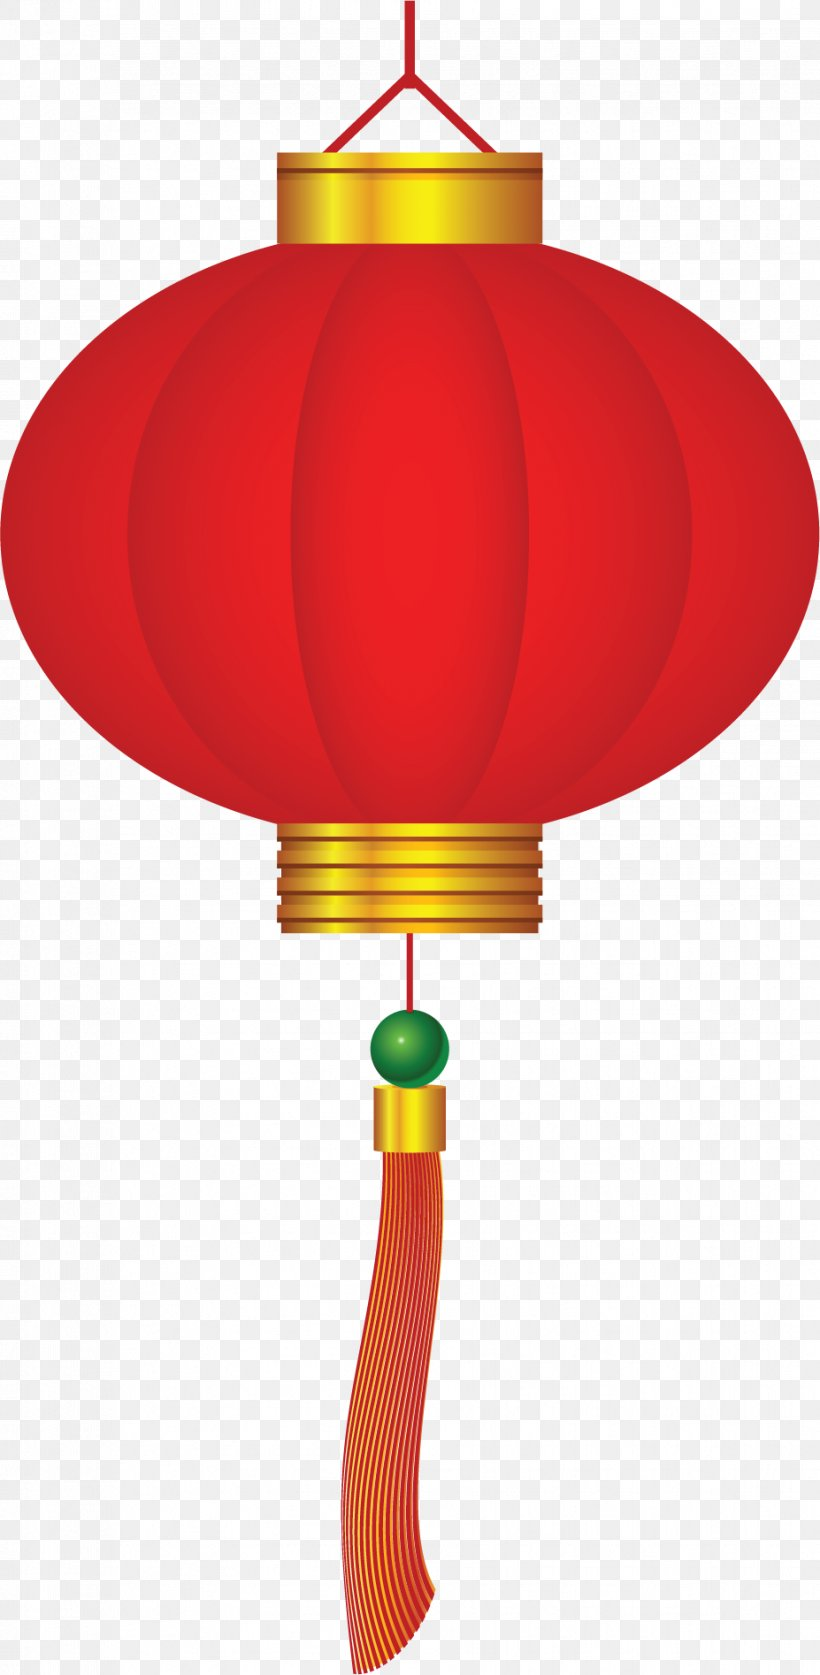 Tangyuan Chinese New Year Lantern Festival Clip Art, PNG, 927x1894px, Tangyuan, Ceiling Fixture, Chinese Calendar, Chinese Dragon, Chinese New Year Download Free